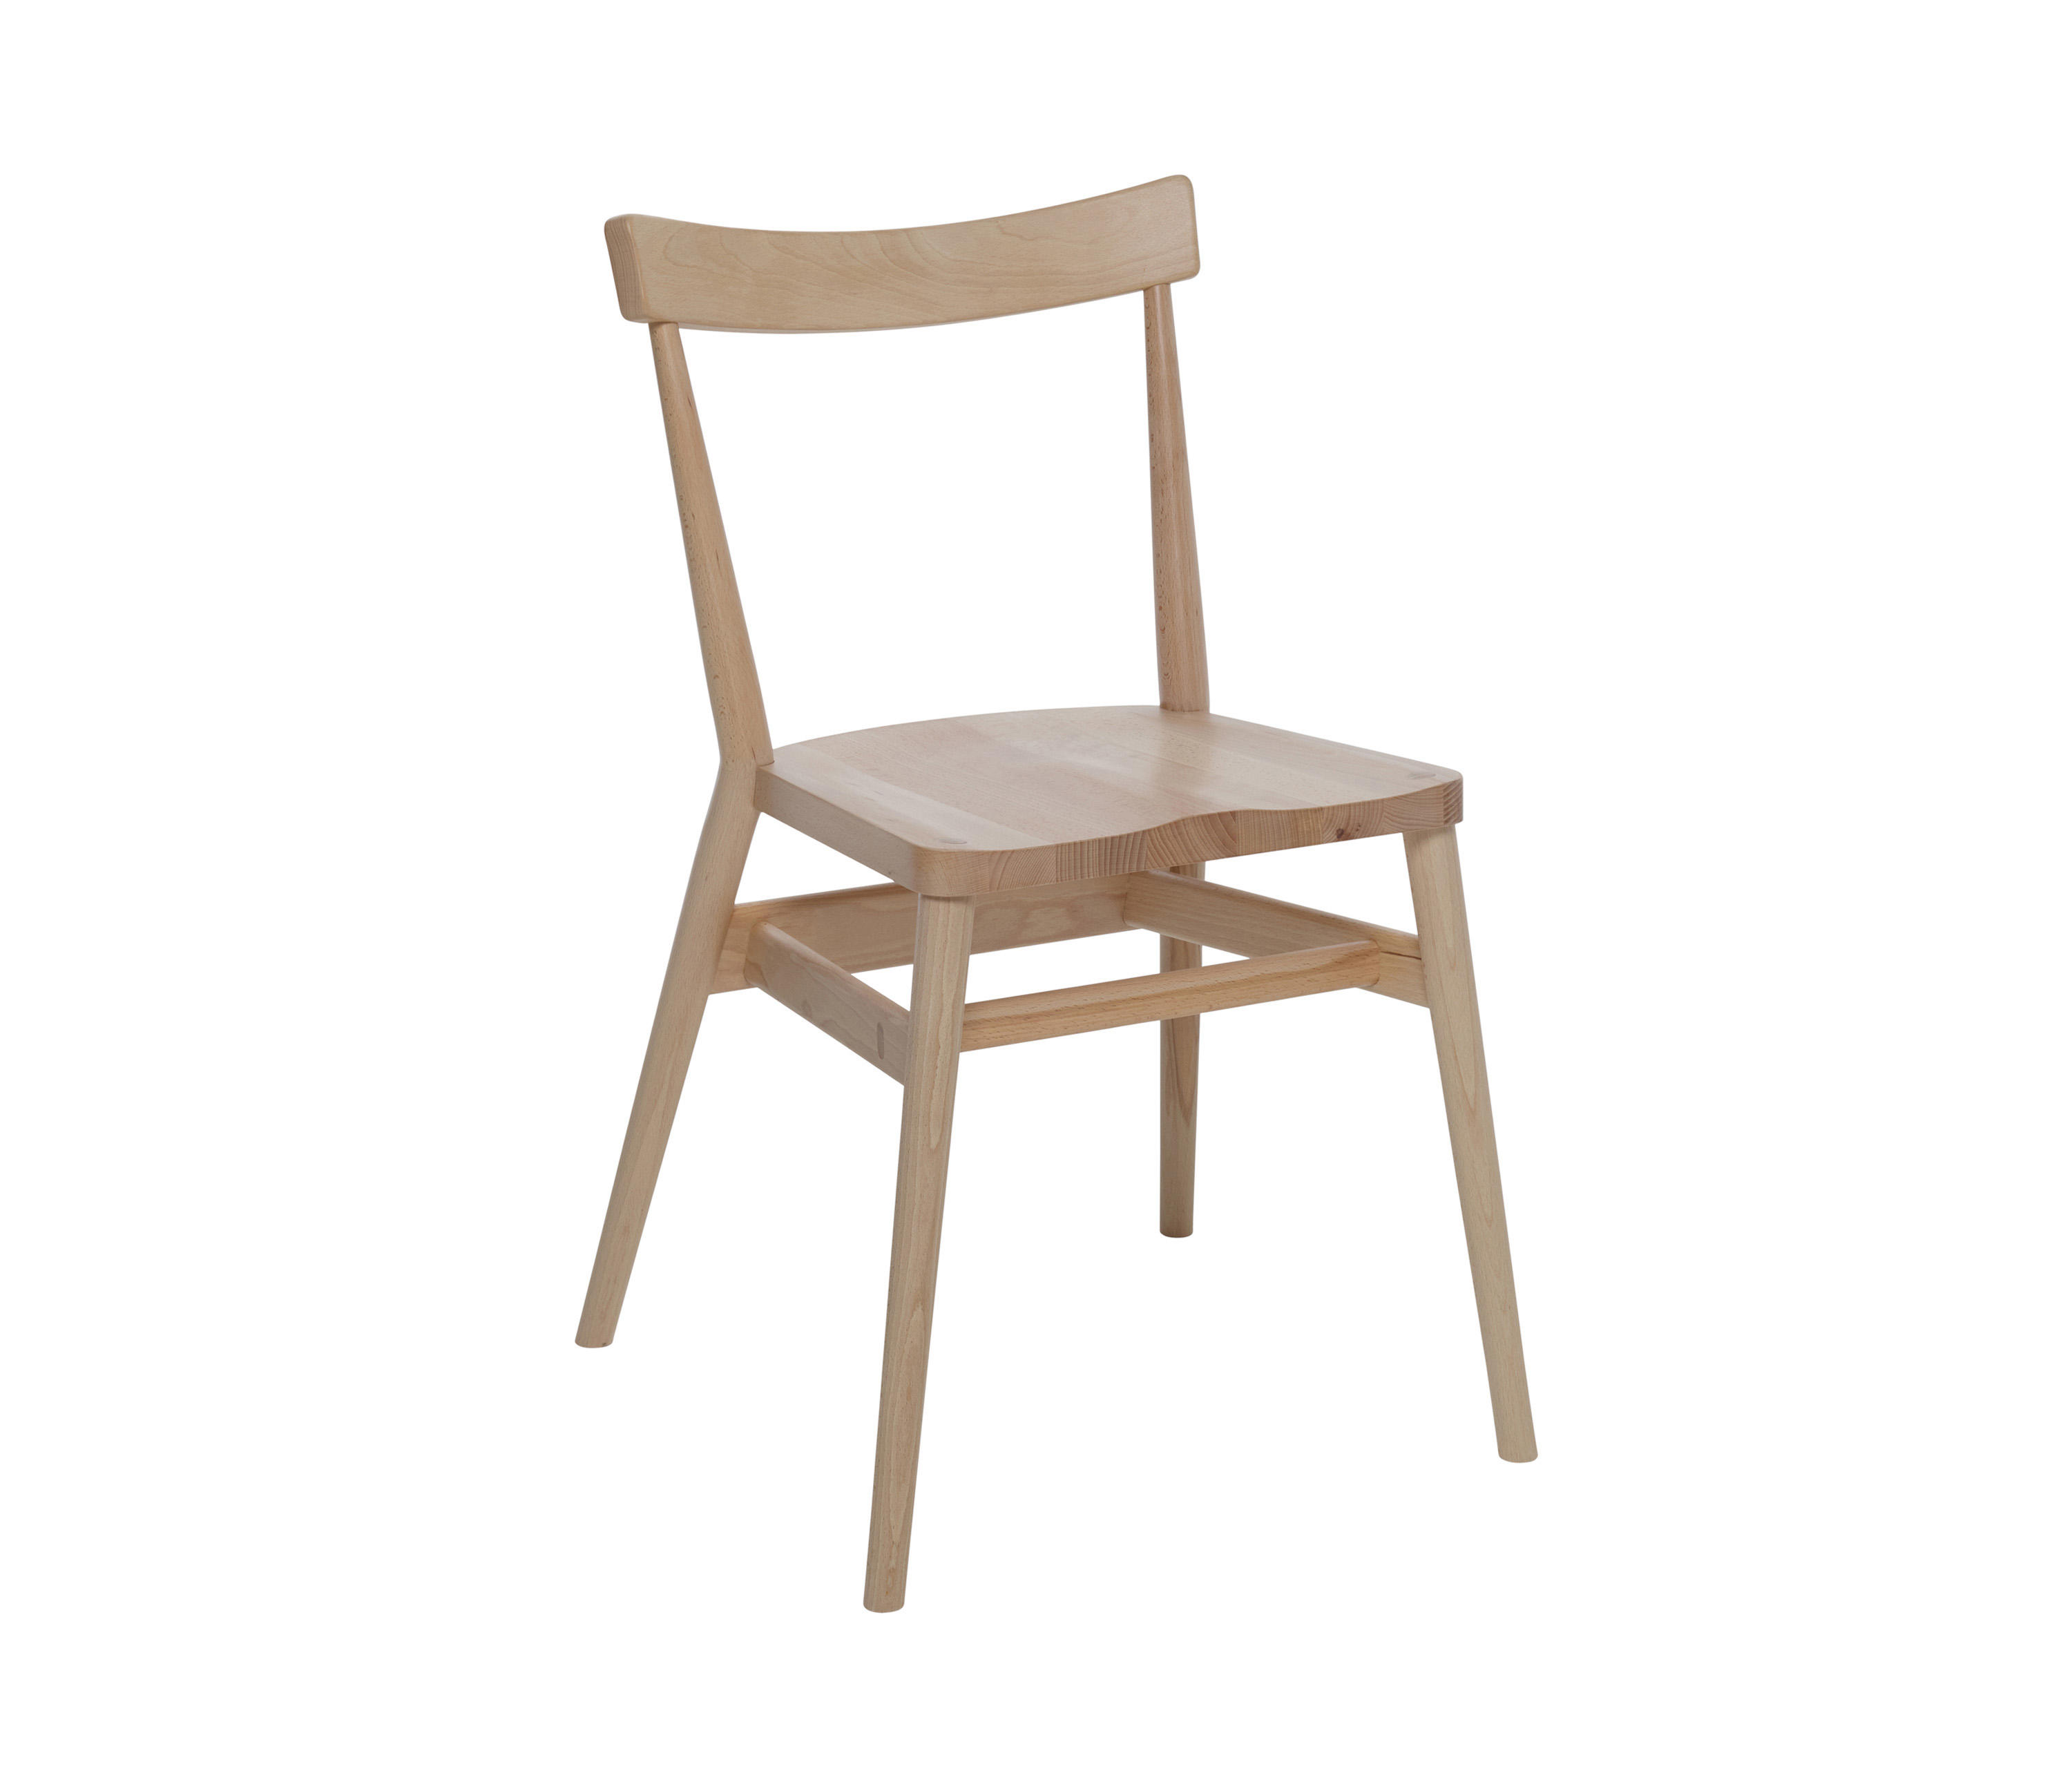 Originals Holland Park | Chair Narrow Back By Ercol | Chairs ...